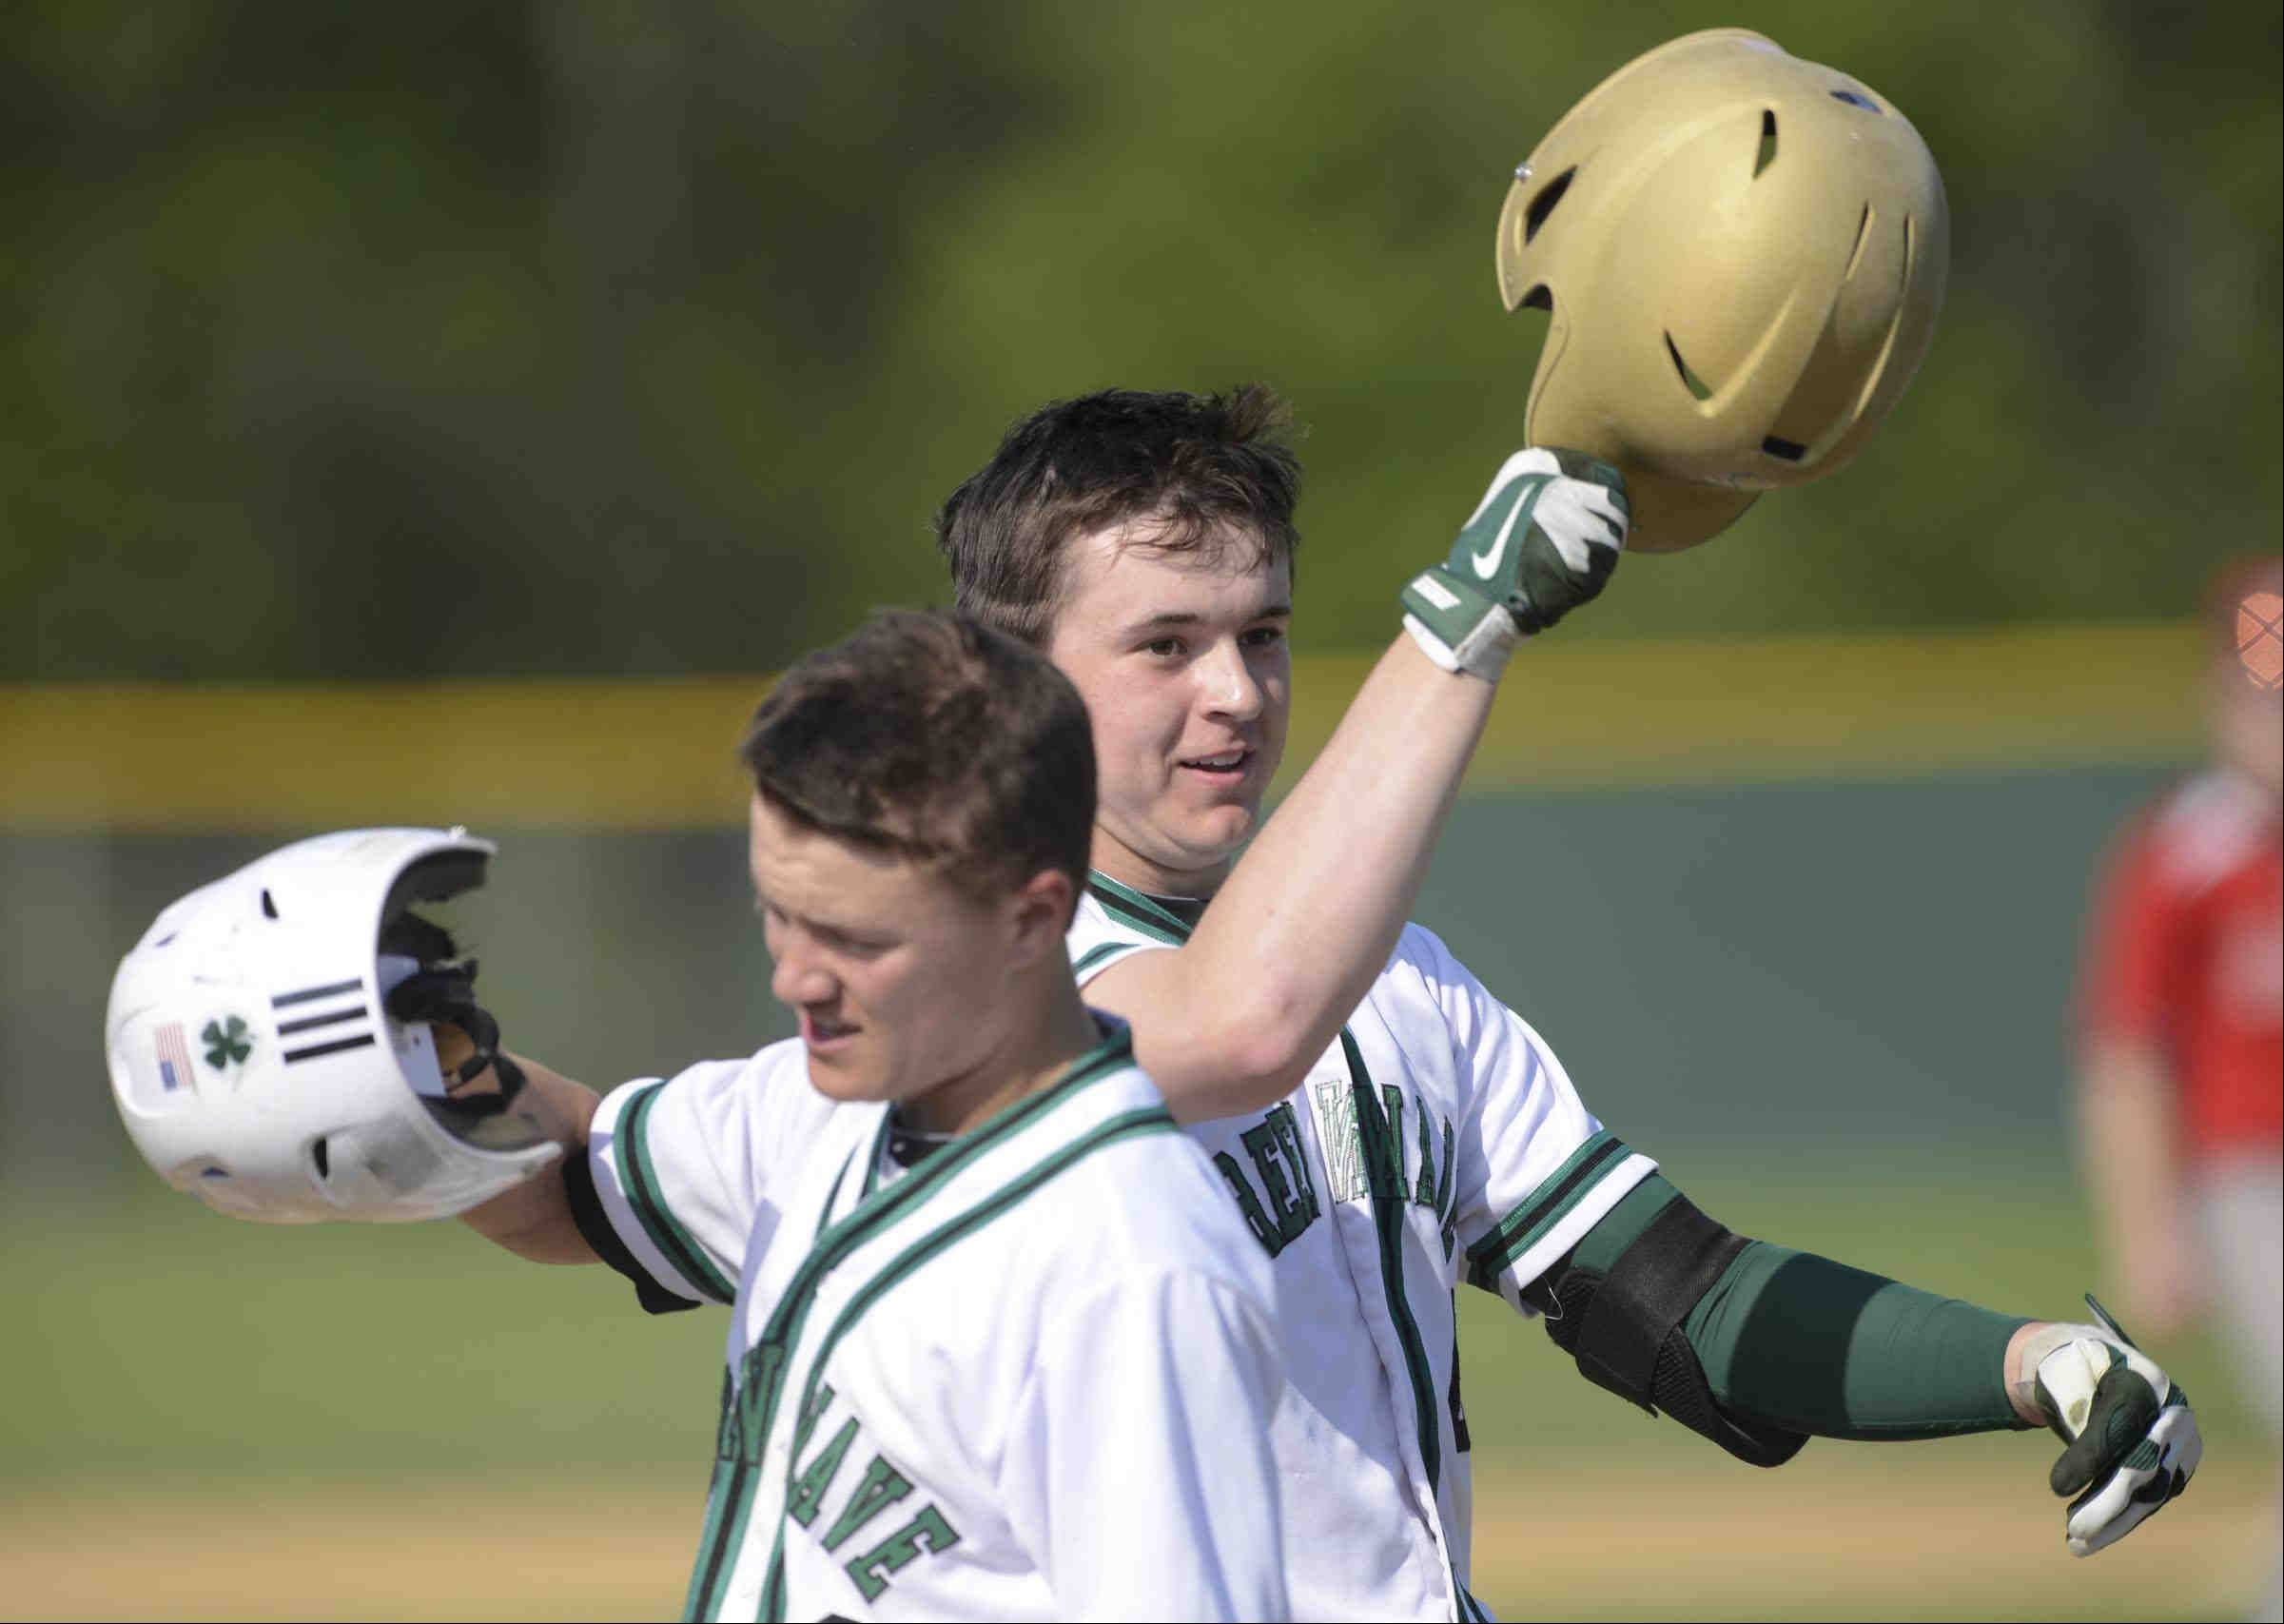 After his 2-run home run, St. Edward's Jack Tierney taps his gold helmet with teammate Michael Castoro in the first inning against Aurora Christian Thursday in the 2A Regional game in Elgin.